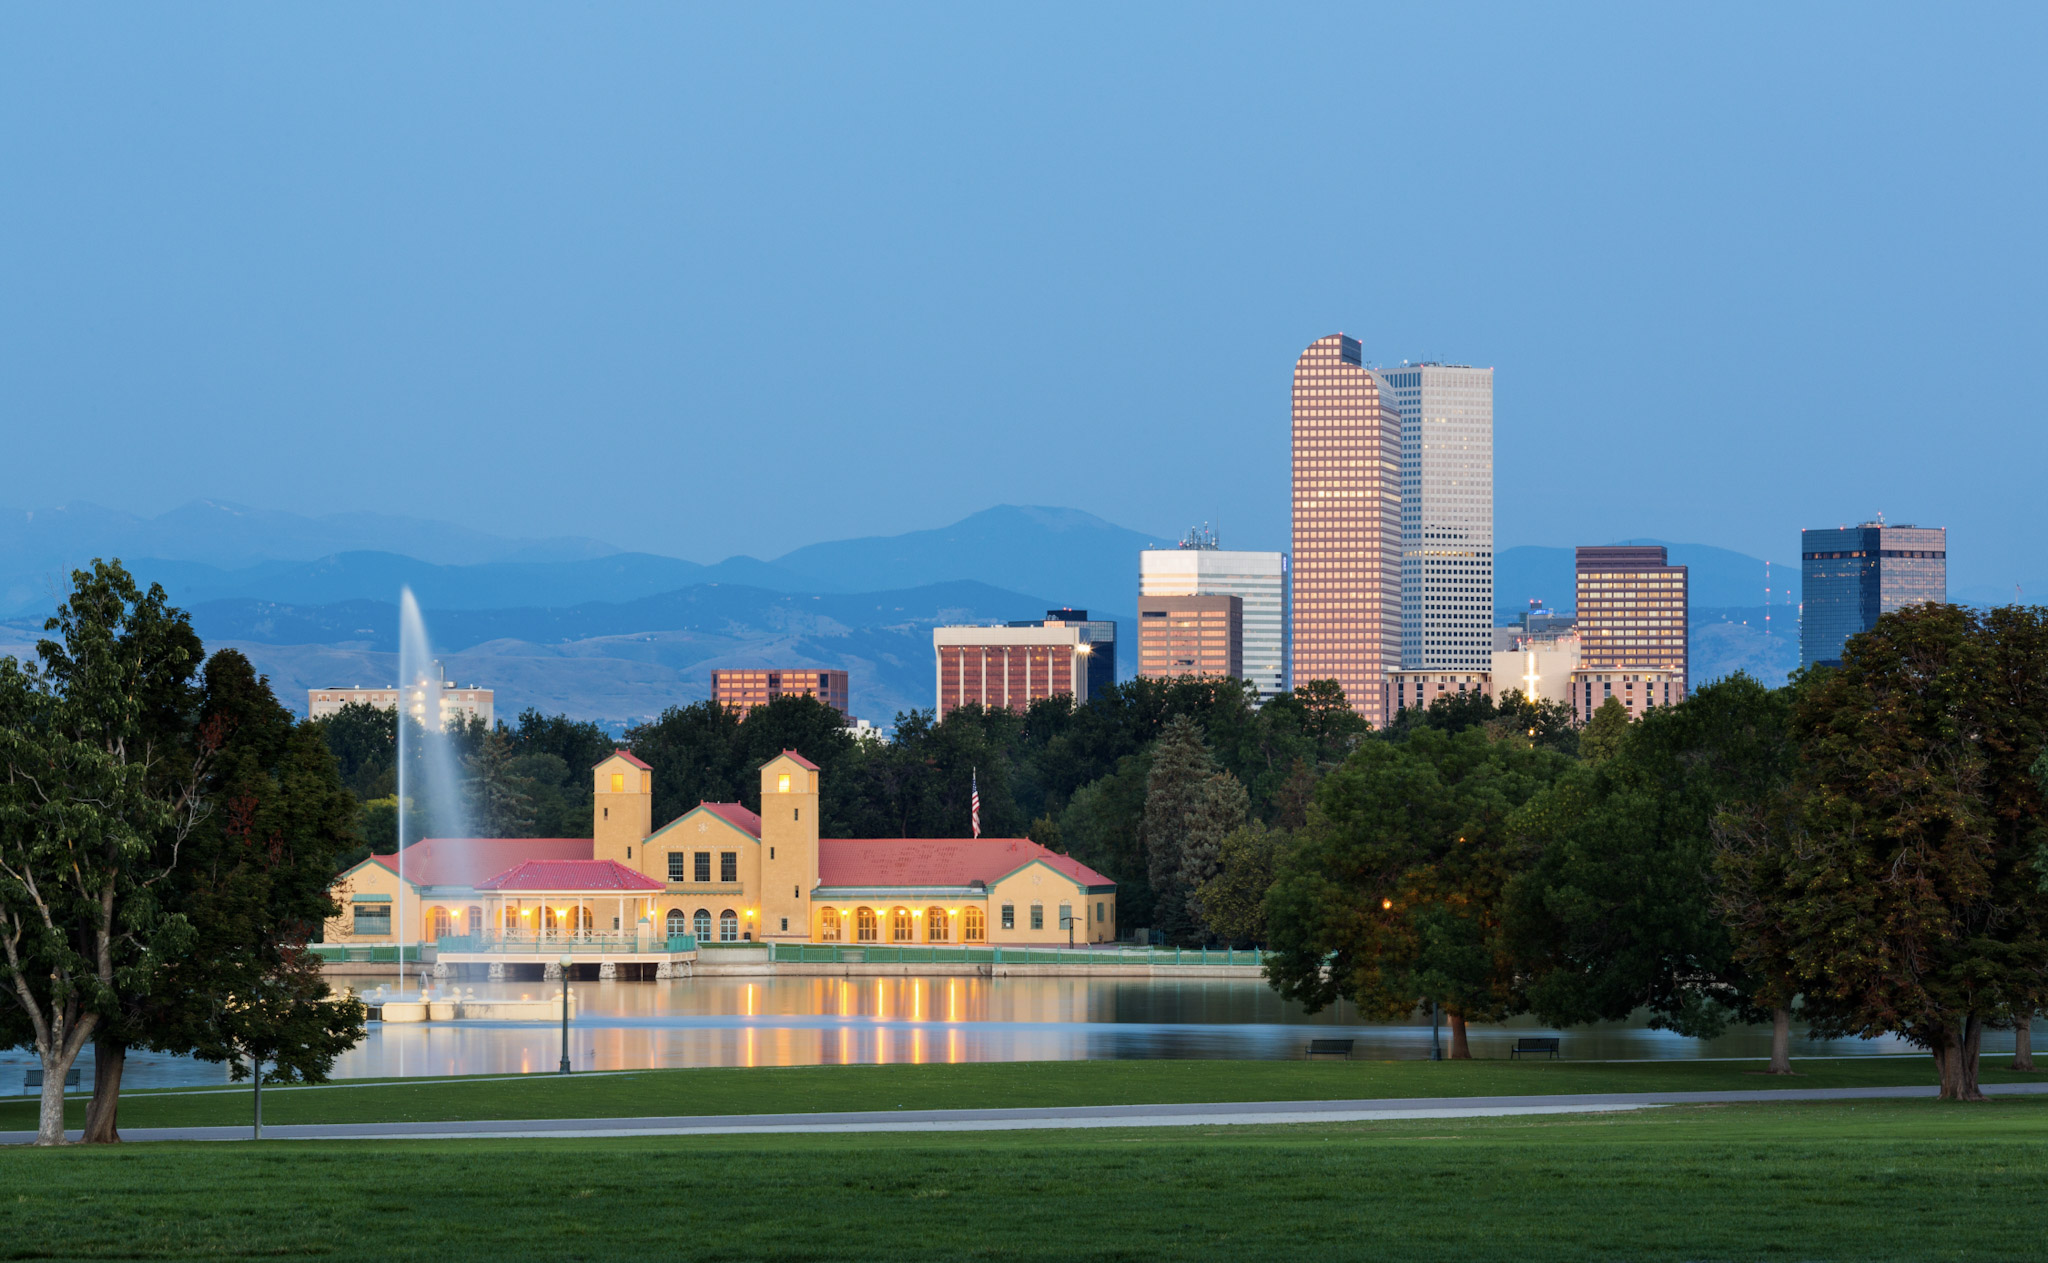 Denver skyline photo. Source: Adobe Stock